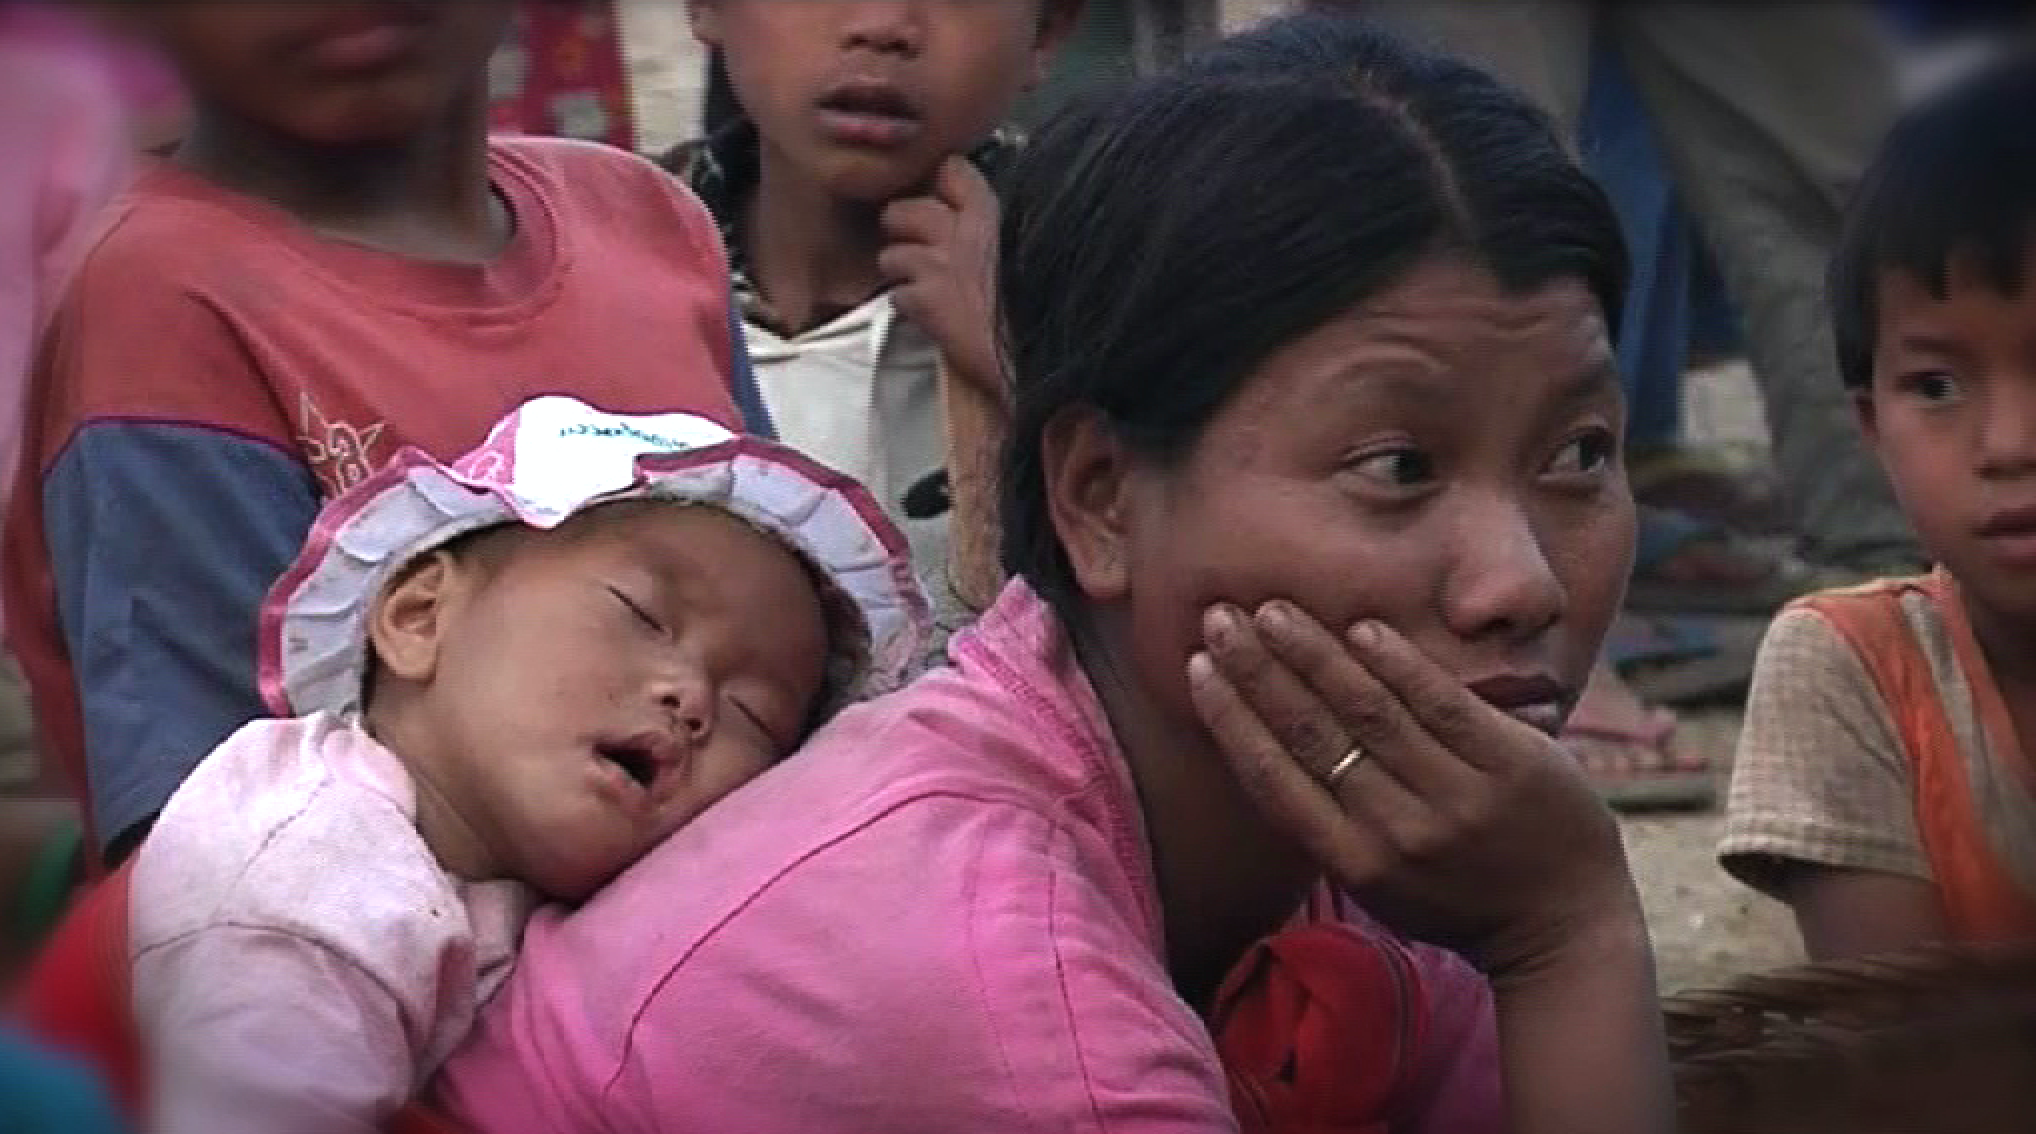 Refugees Flee Myanmar to China